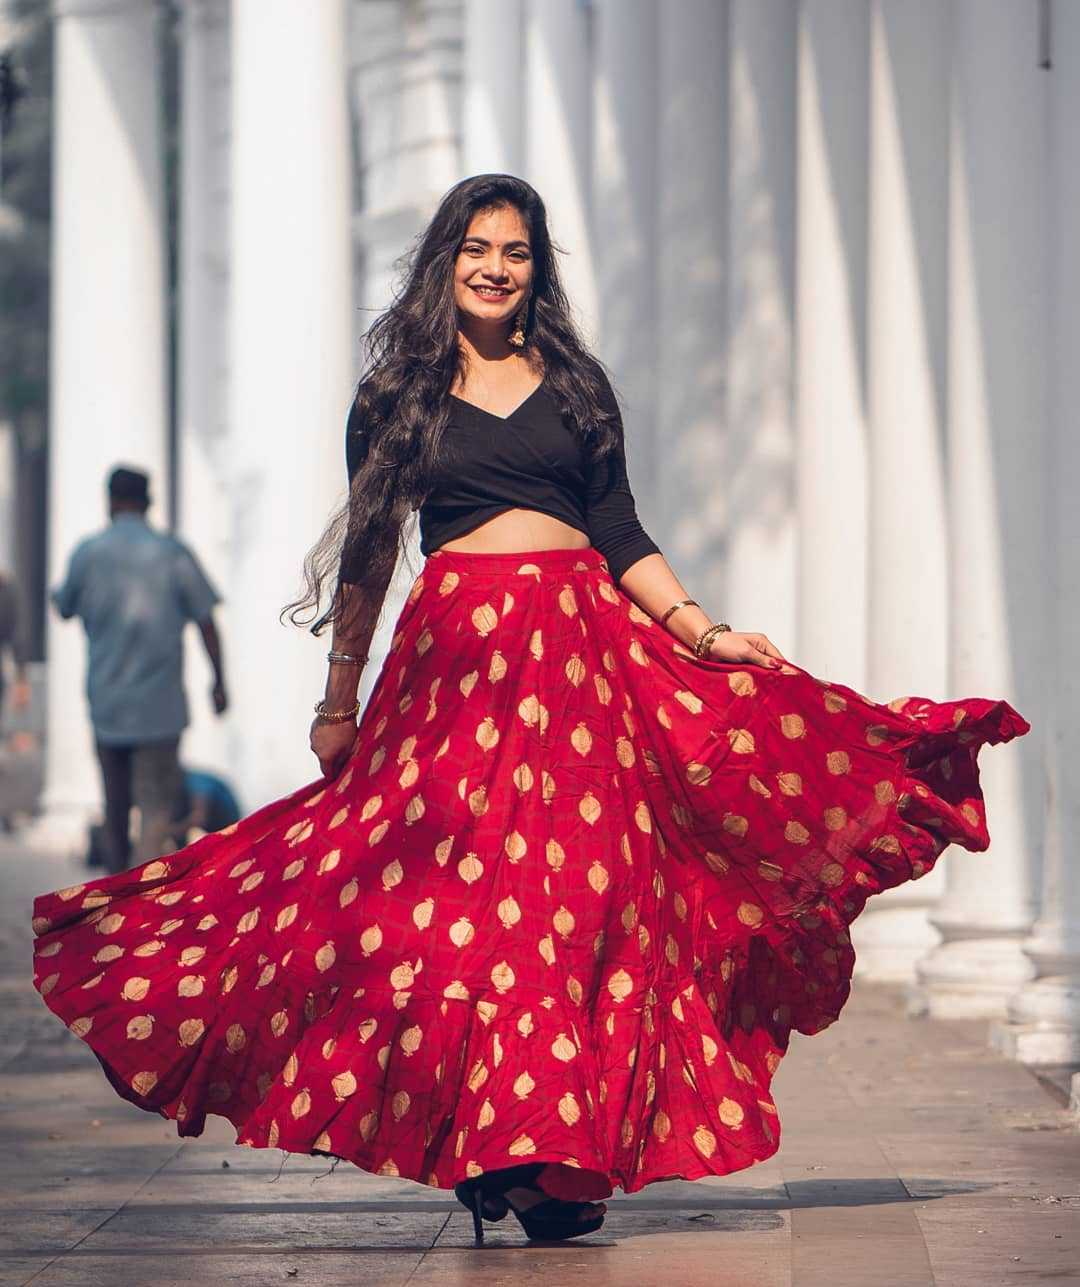 Top 9 Dussehra Outfits Inspirations That Are Trending in 2019 - max fashion skirt and crop top